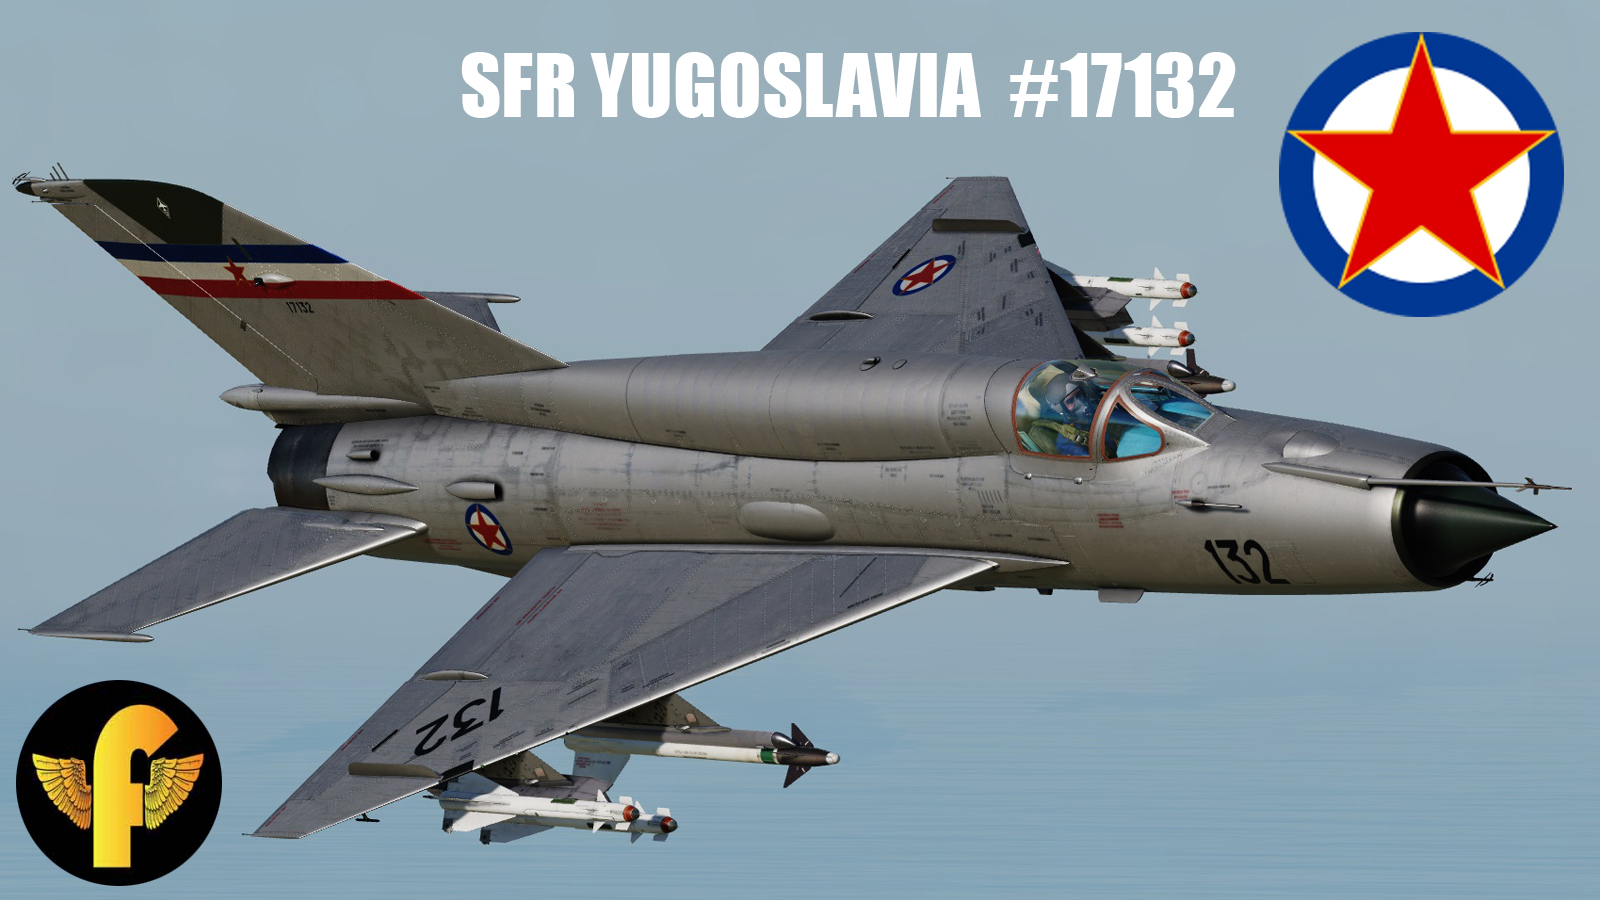 Mig-21BIS SFR Yugoslavia #17132 (NOT UPDATED)